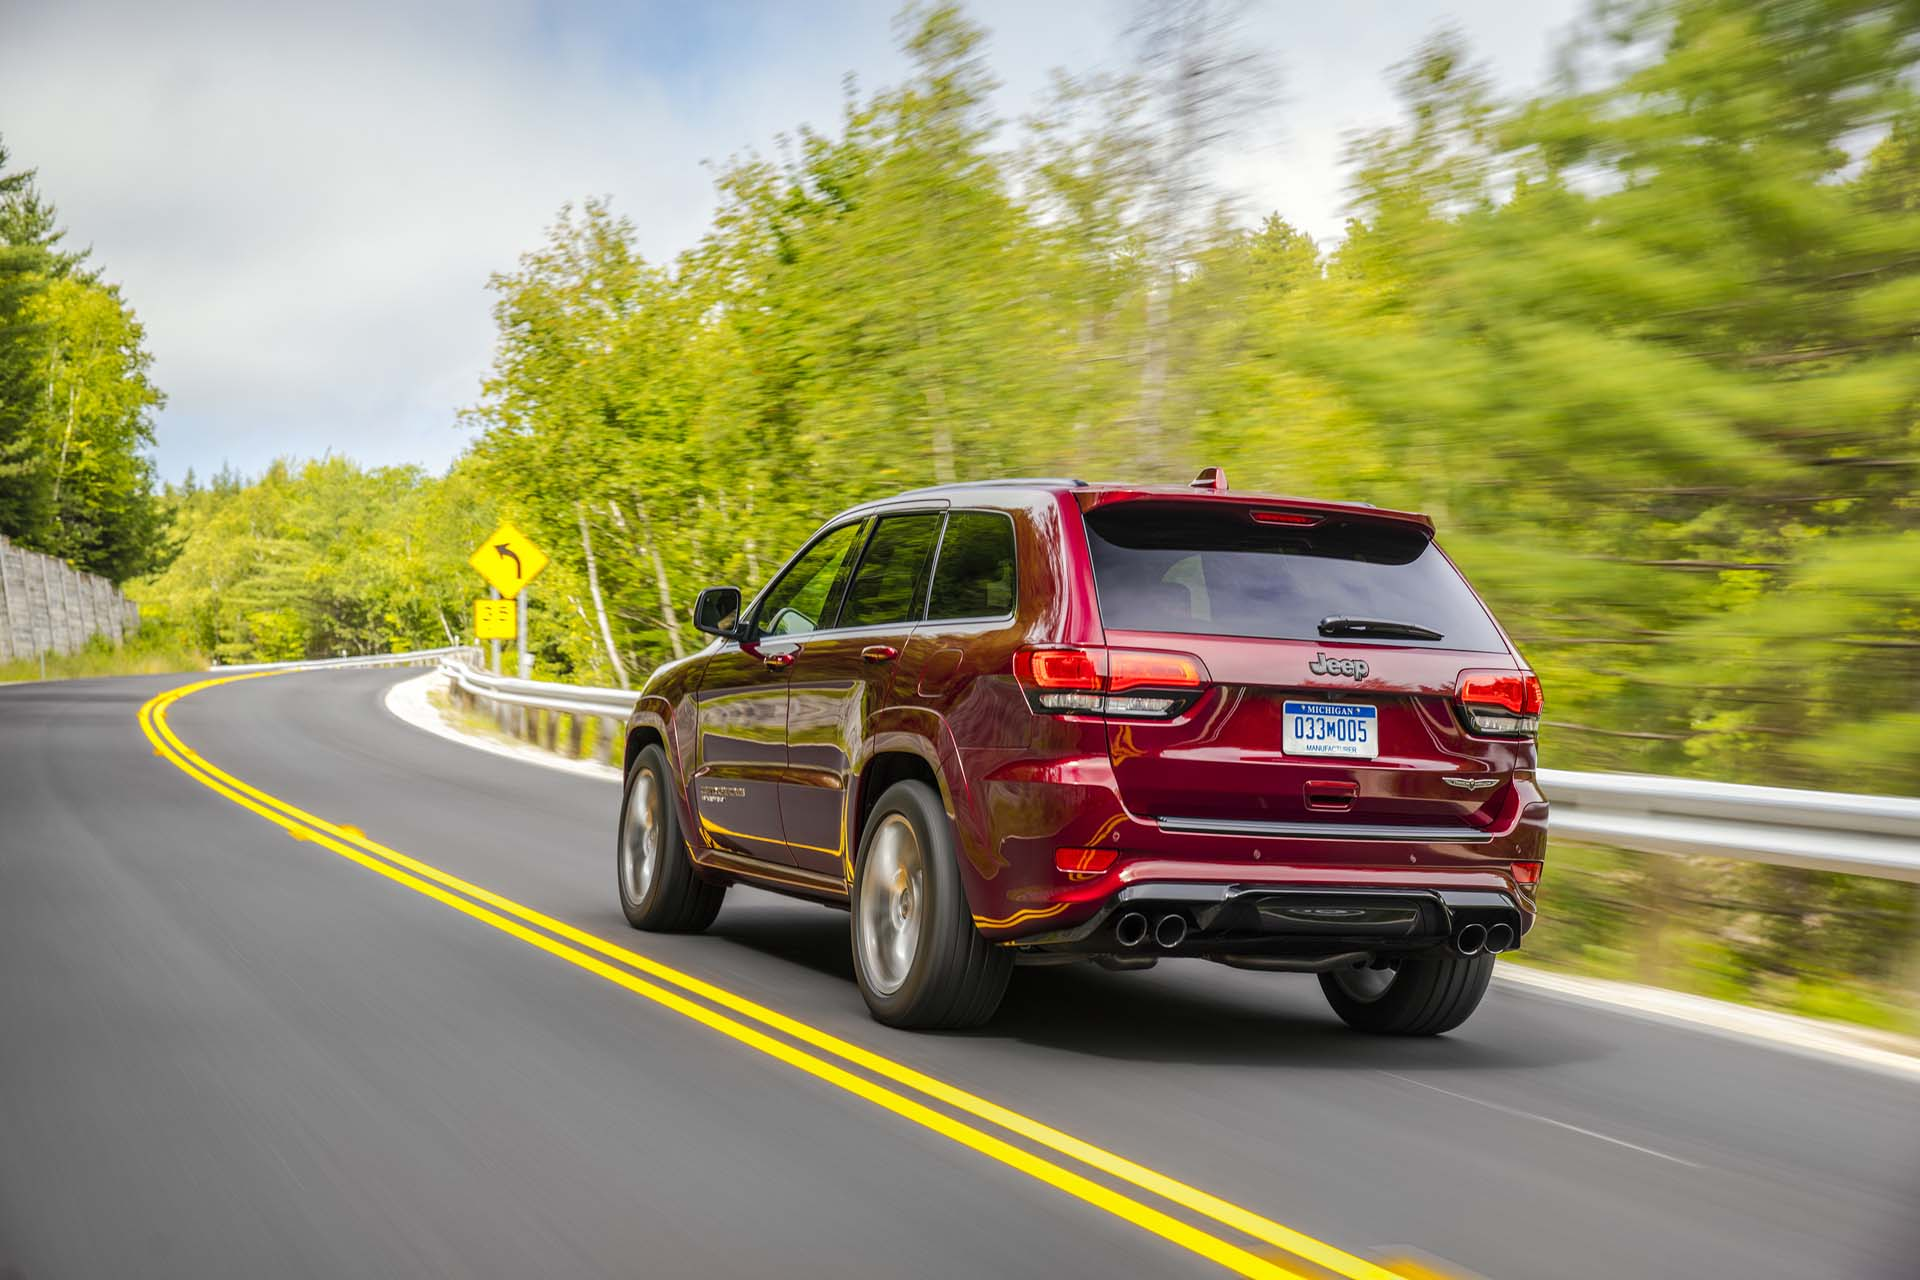 Jeep 3Rd Row >> 3 Row Jeep Grand Cherokee Will Reportedly Be Built At Idled Detroit